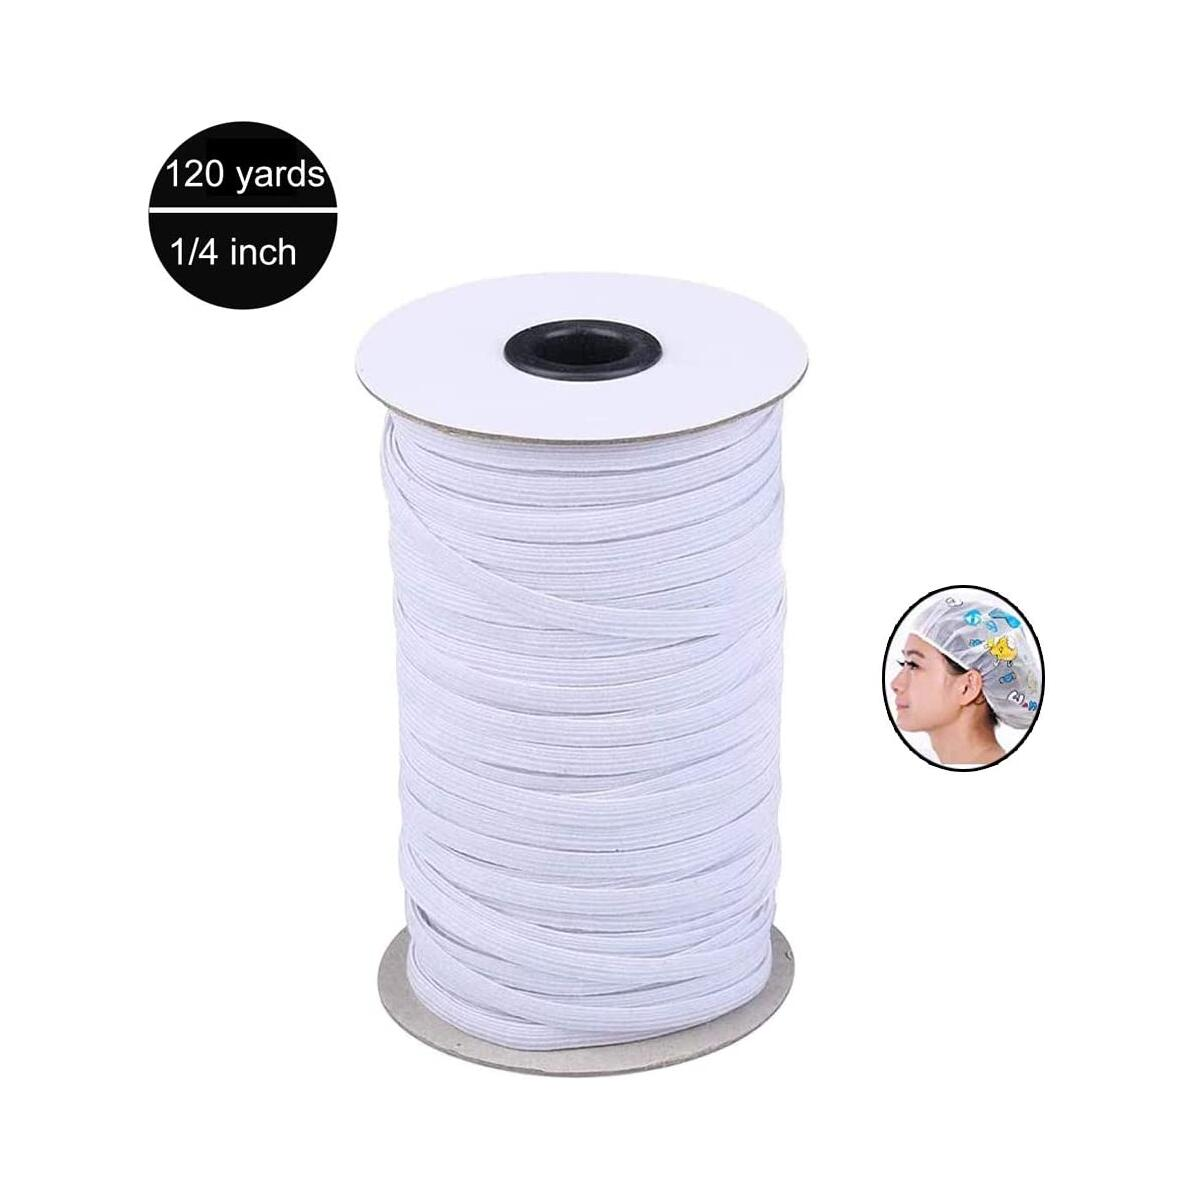 ILamourCar 120 Yards Elastic Cord, Elastic Loop Ear Rope Stretch Flat String Craft Project Bracelet String Trim for Crafting,Hanging -White